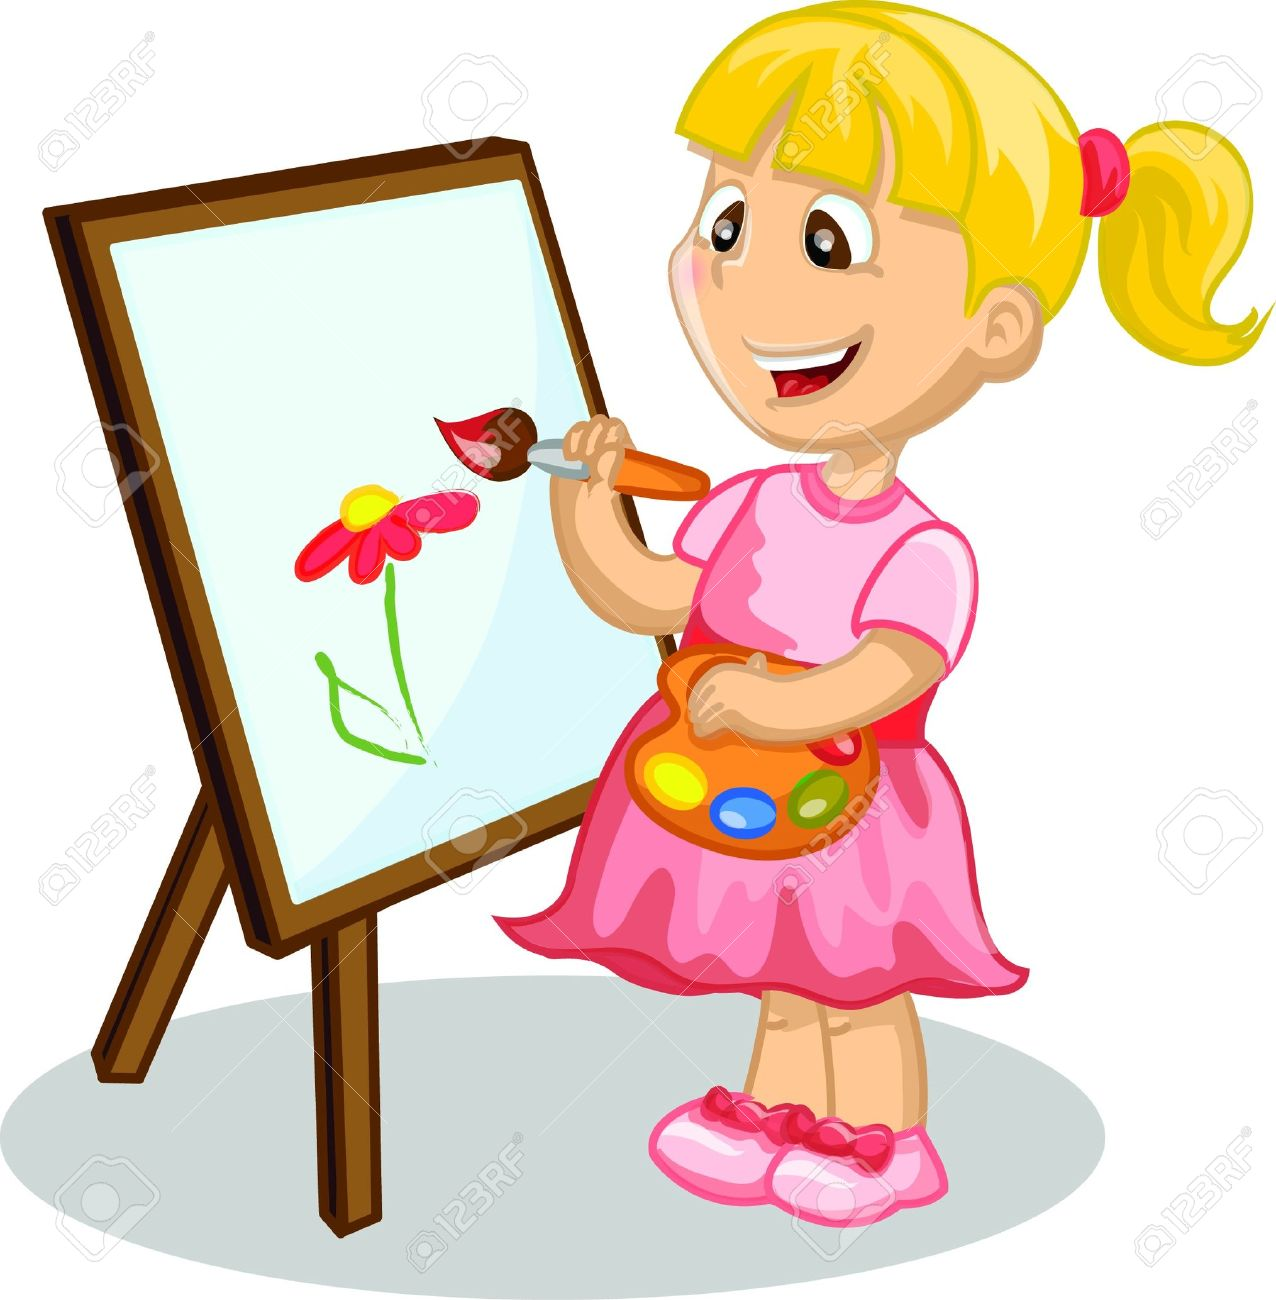 Girl clipart drawing.